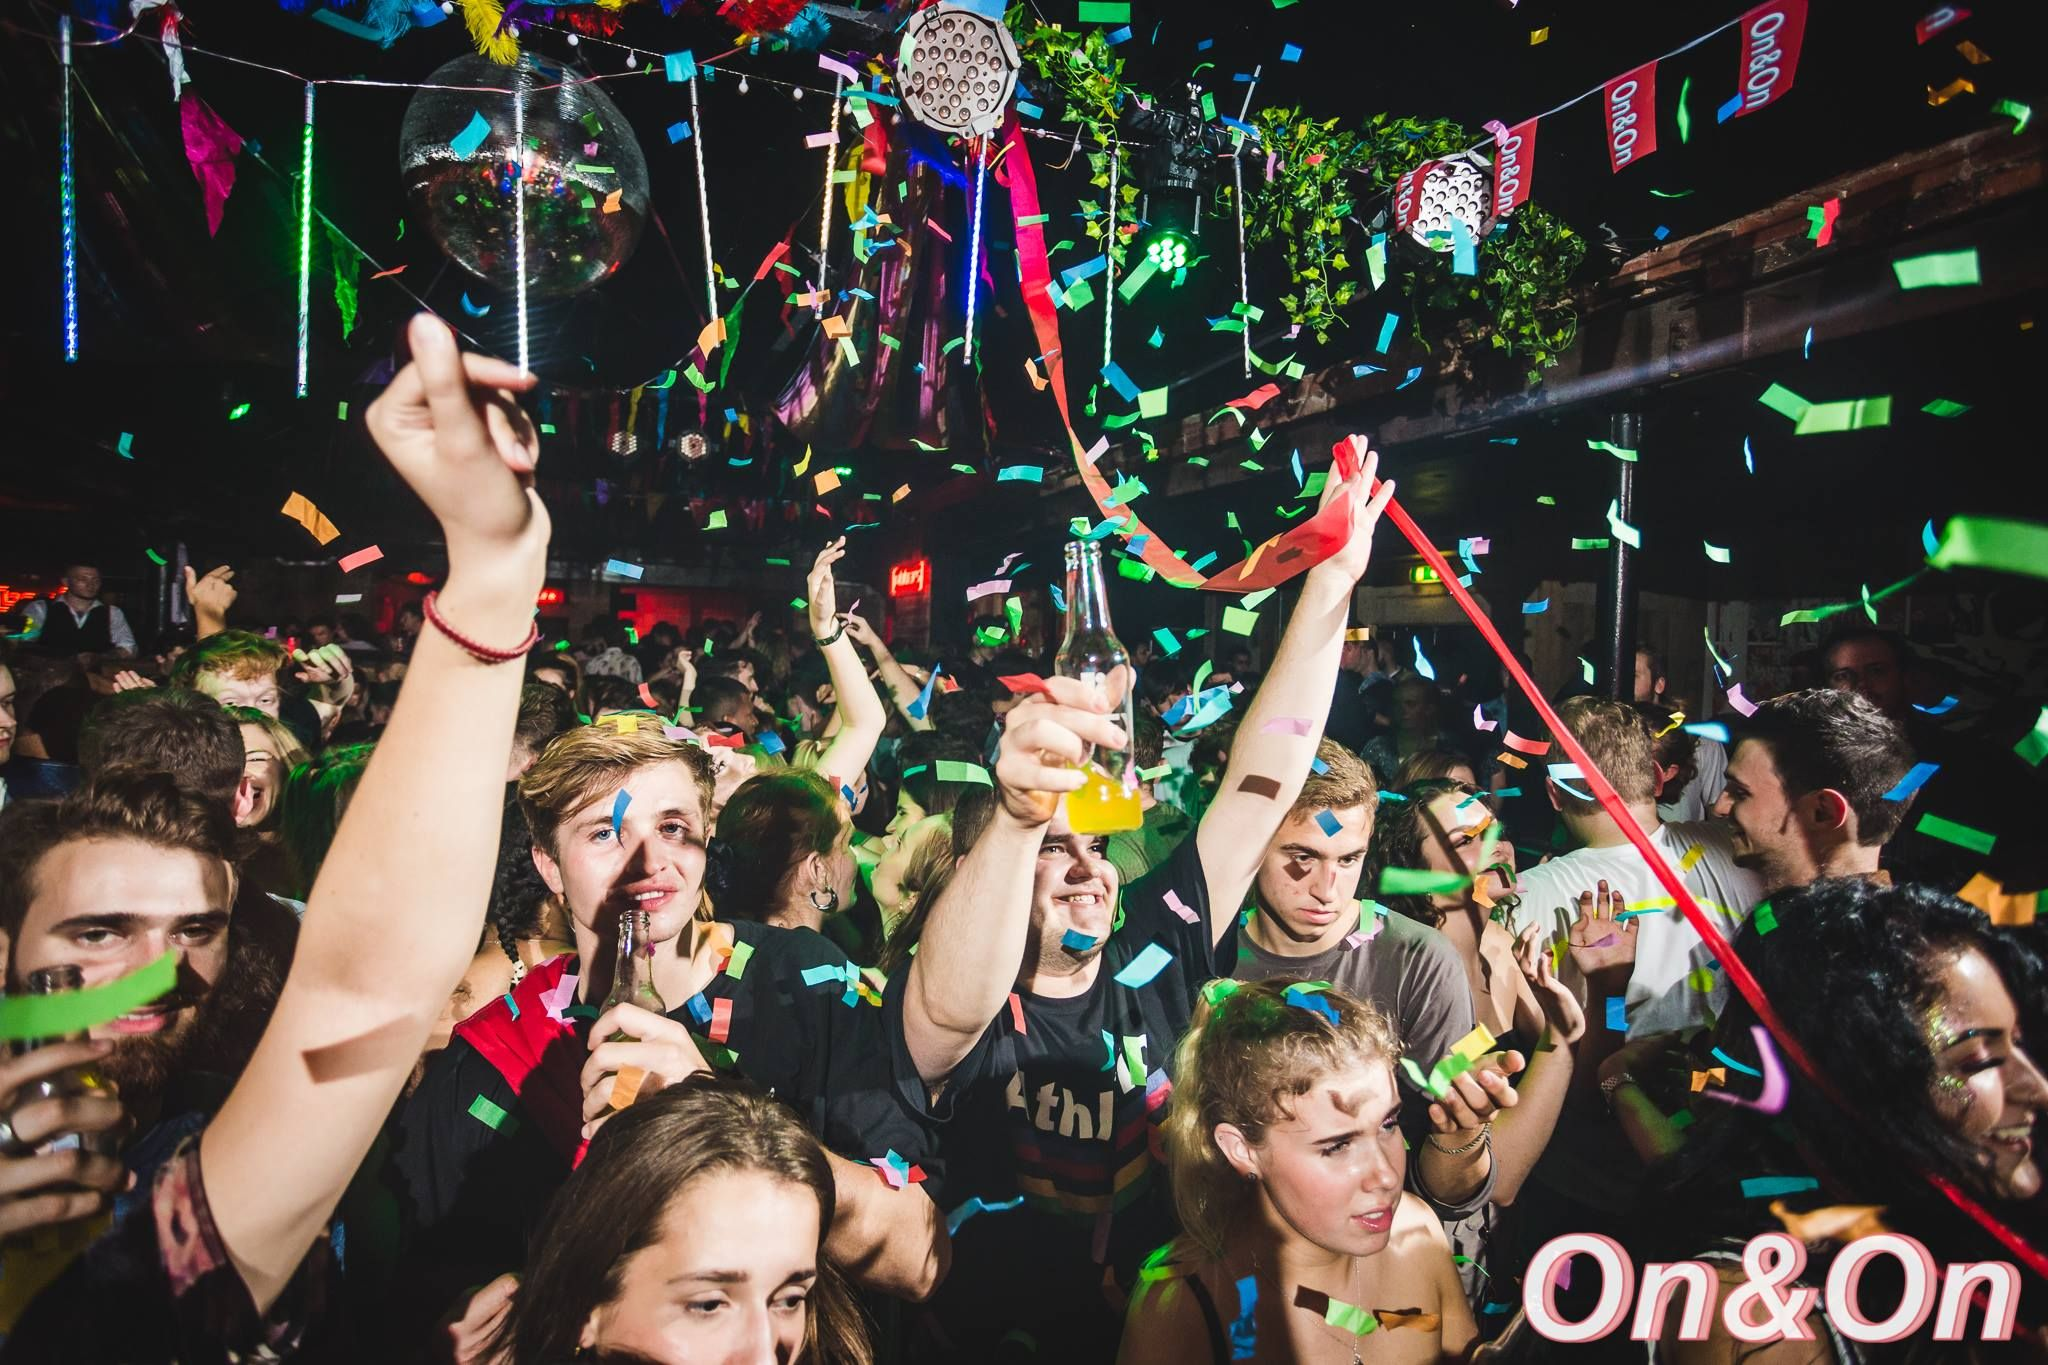 Image may contain: Crowd, Paper, Sunglasses, Accessories, Accessory, Night Life, Night Club, Club, Party, Human, Person